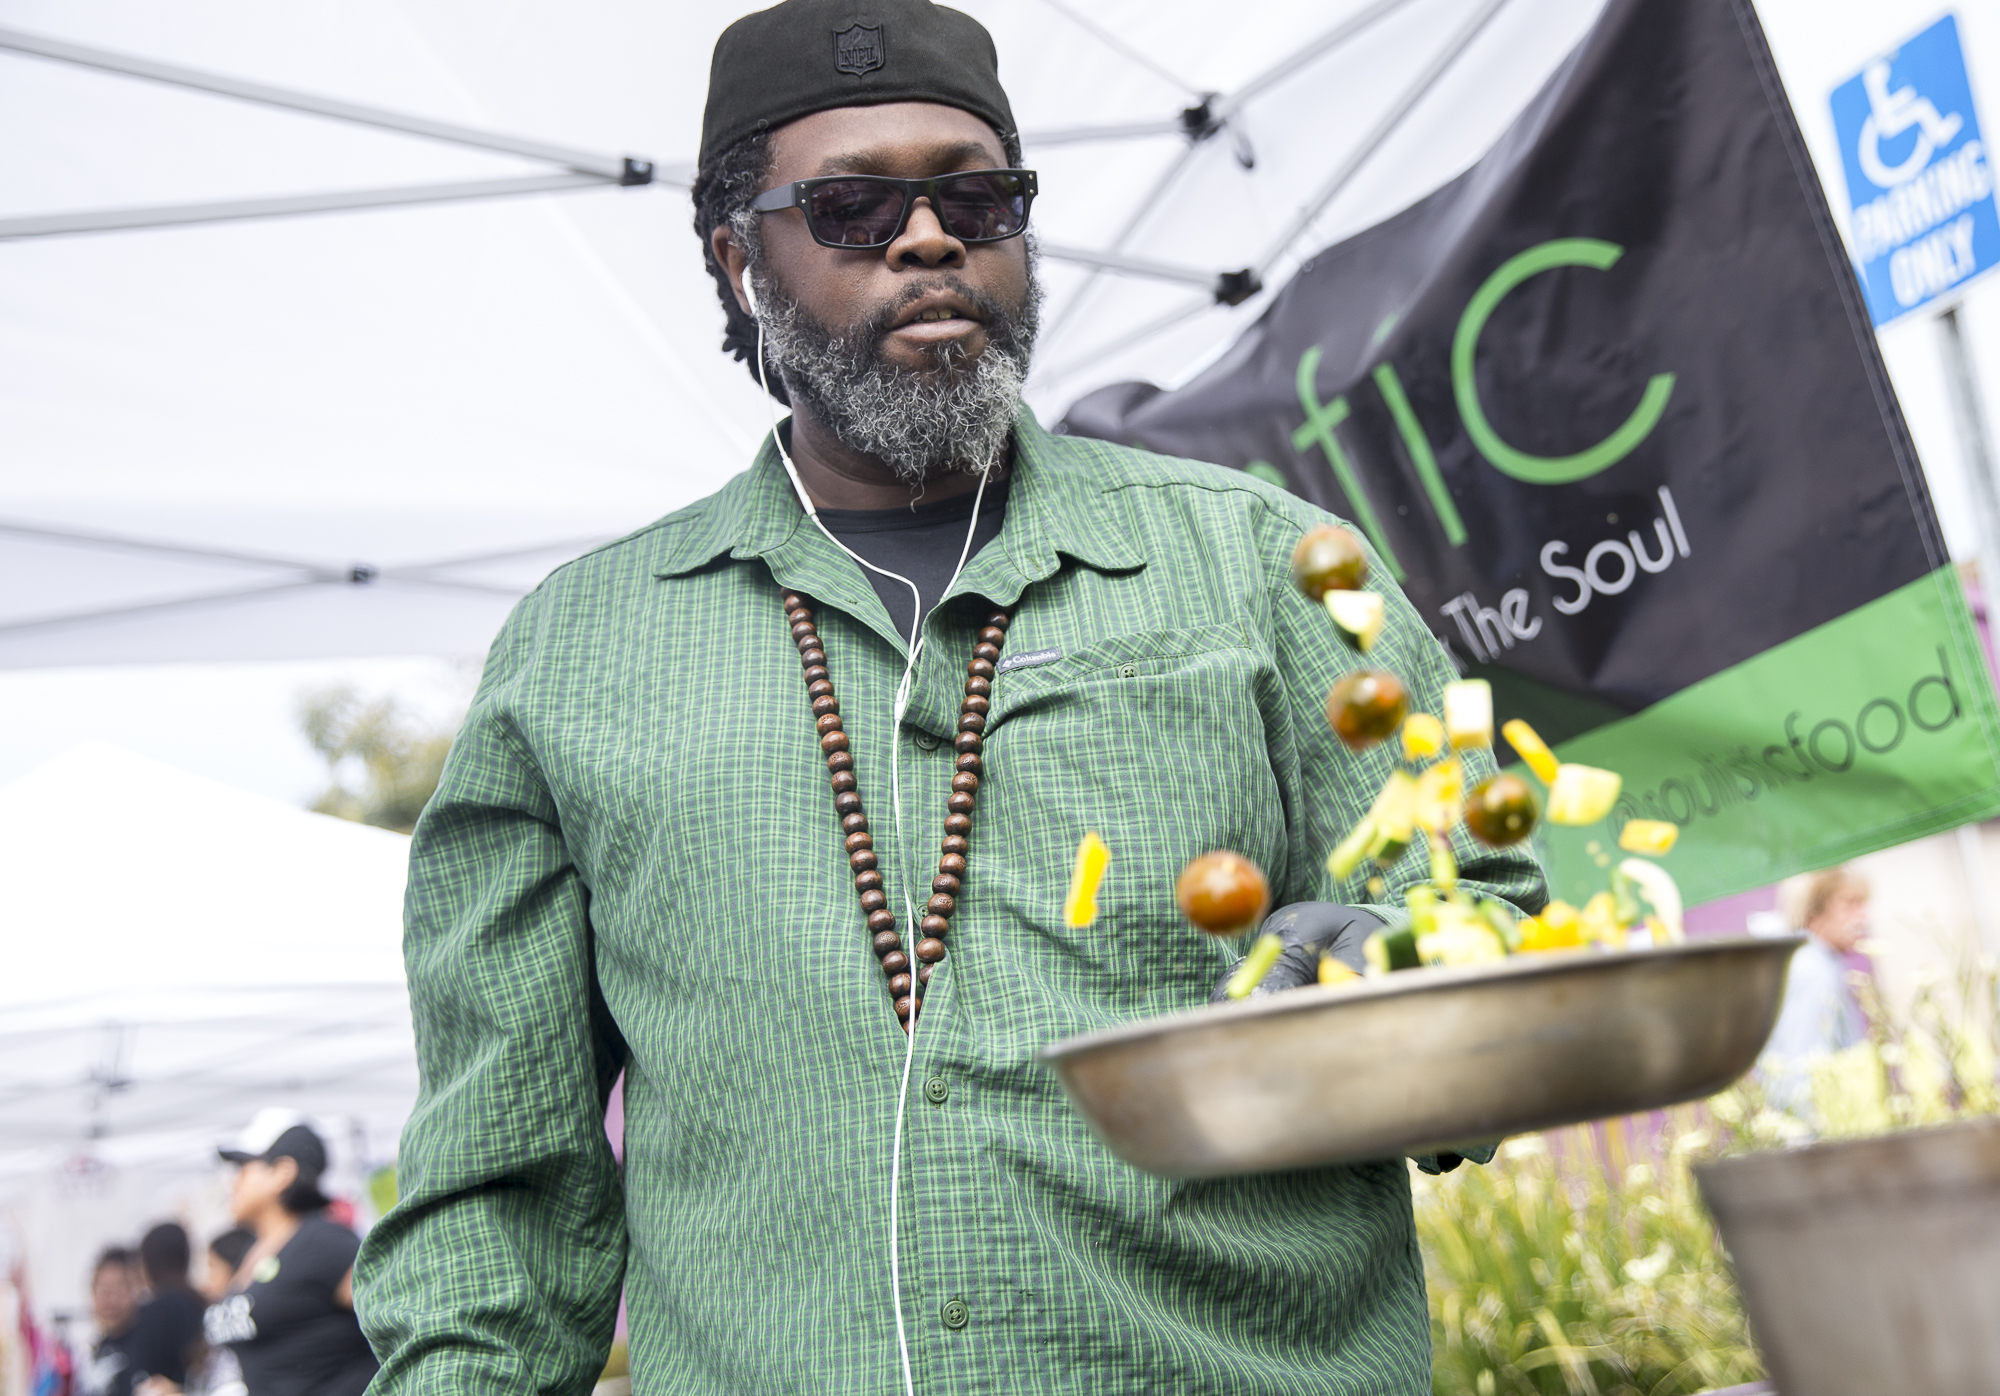 """Chef D. Dahm tosses a mix of vegan ingredients in a pan at the """"Soulistic Vegan Food"""" tent during the Pico Block Party festivities that took place at the 18th street Arts Center in Santa Monica, California on Saturday May 19, 2018. The Pico Block Party is a celebration of artists and cultures of the Pico neighborhood in Santa Monica with the festivities primarily focusing on youth artists and empowering youth voices. (Matthew Martin/Corsair Photo)"""